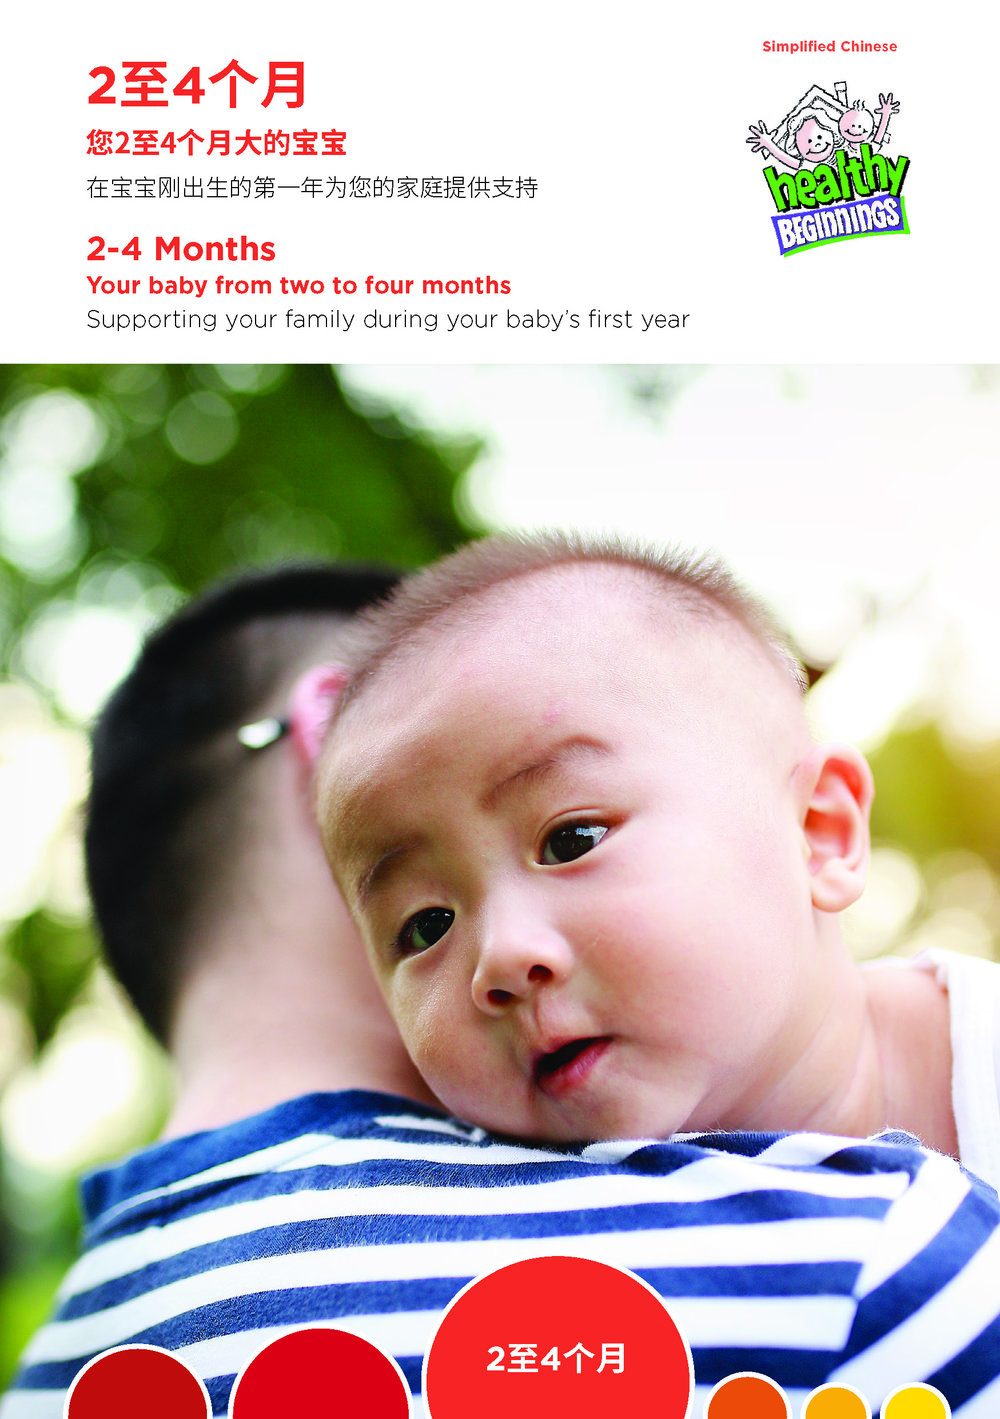 BOOKLET 3 - 2-4 MONTHS_CHINESE_Final v2_SPREADS.jpg